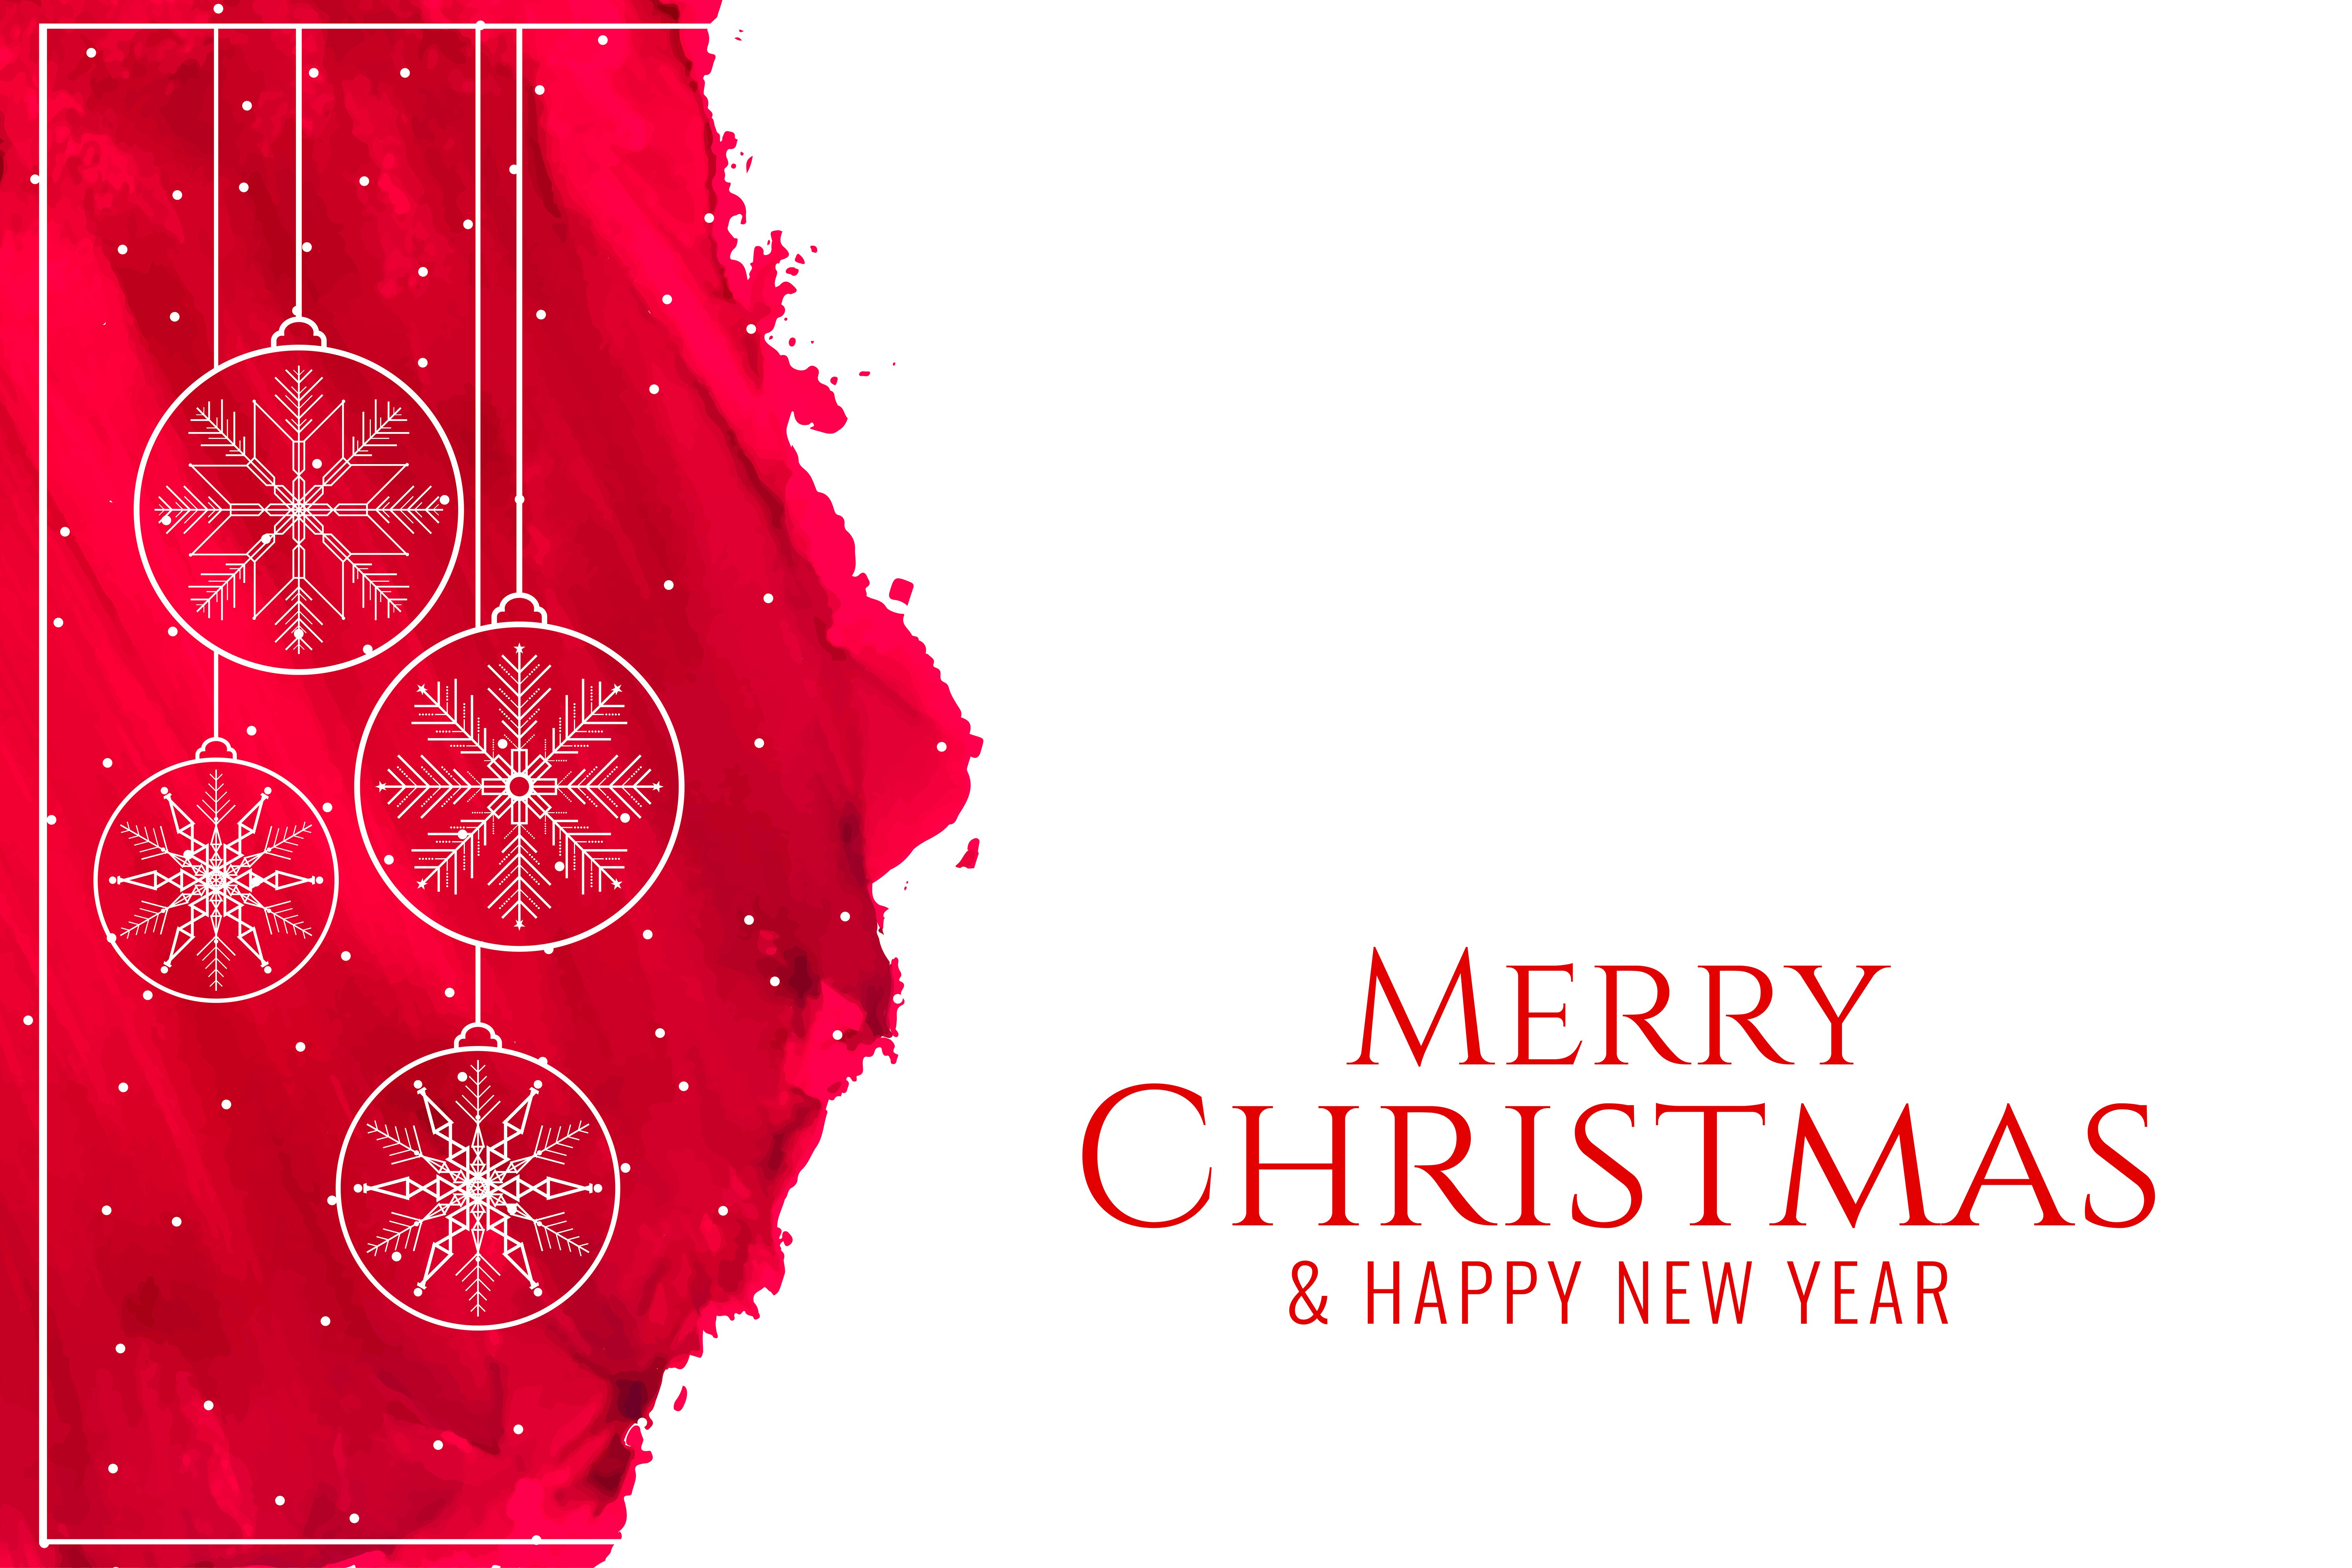 download Merry Christmas and Happy New Year 2020 4K wallpaper 6000x4000